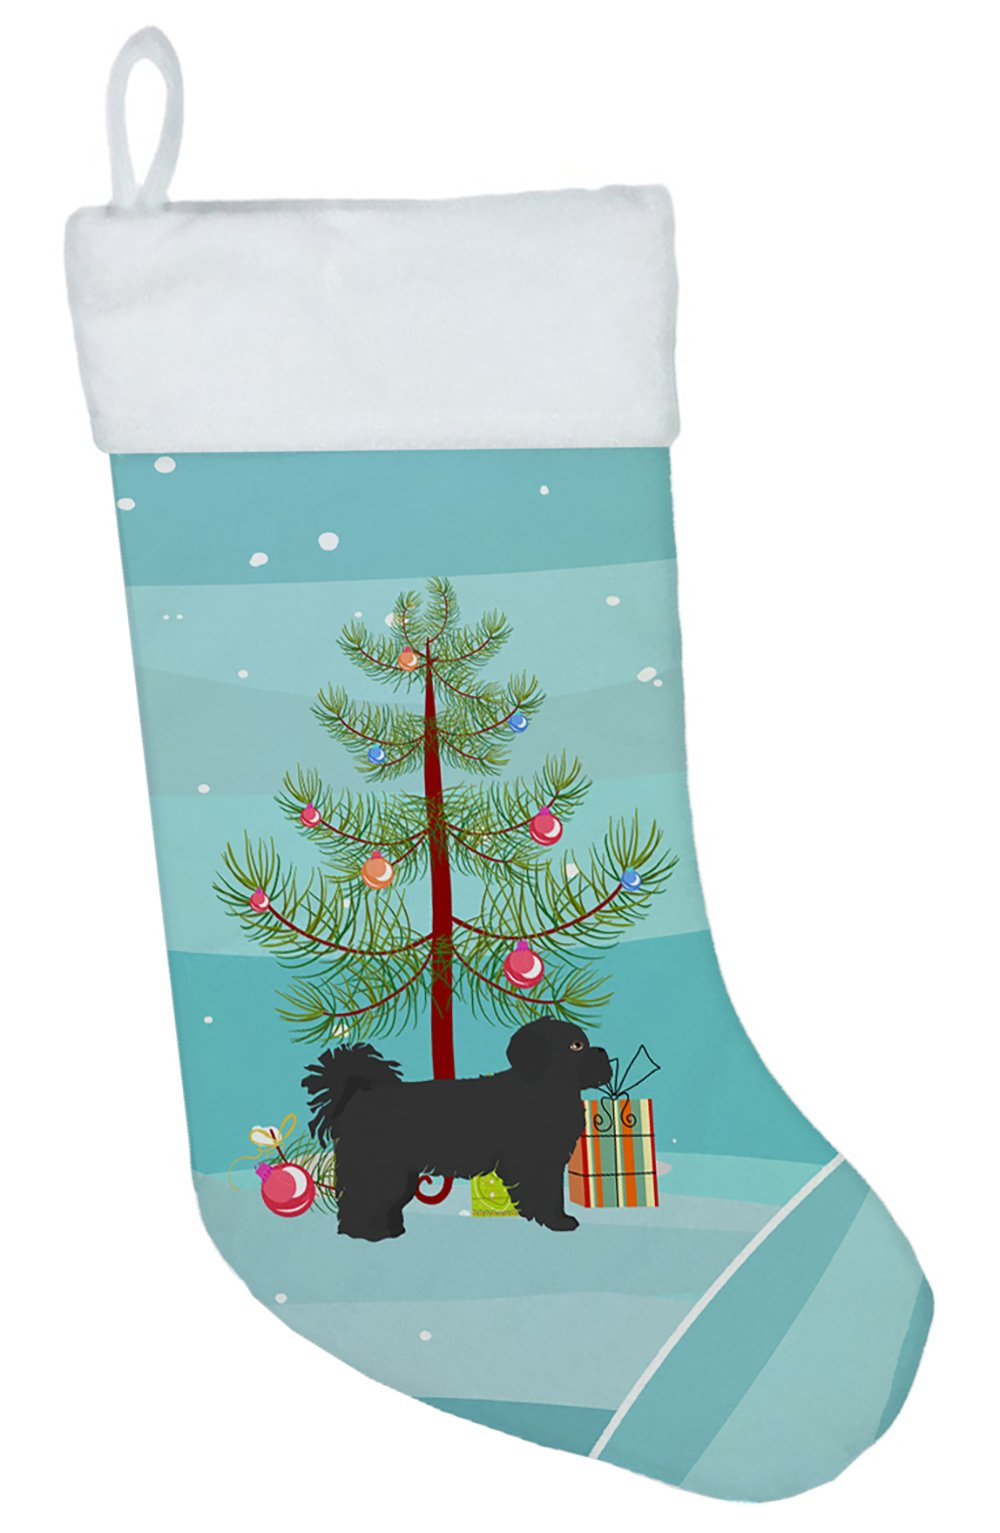 Black Pekeapoo Christmas Tree Christmas Stocking CK3858CS by Caroline's Treasures